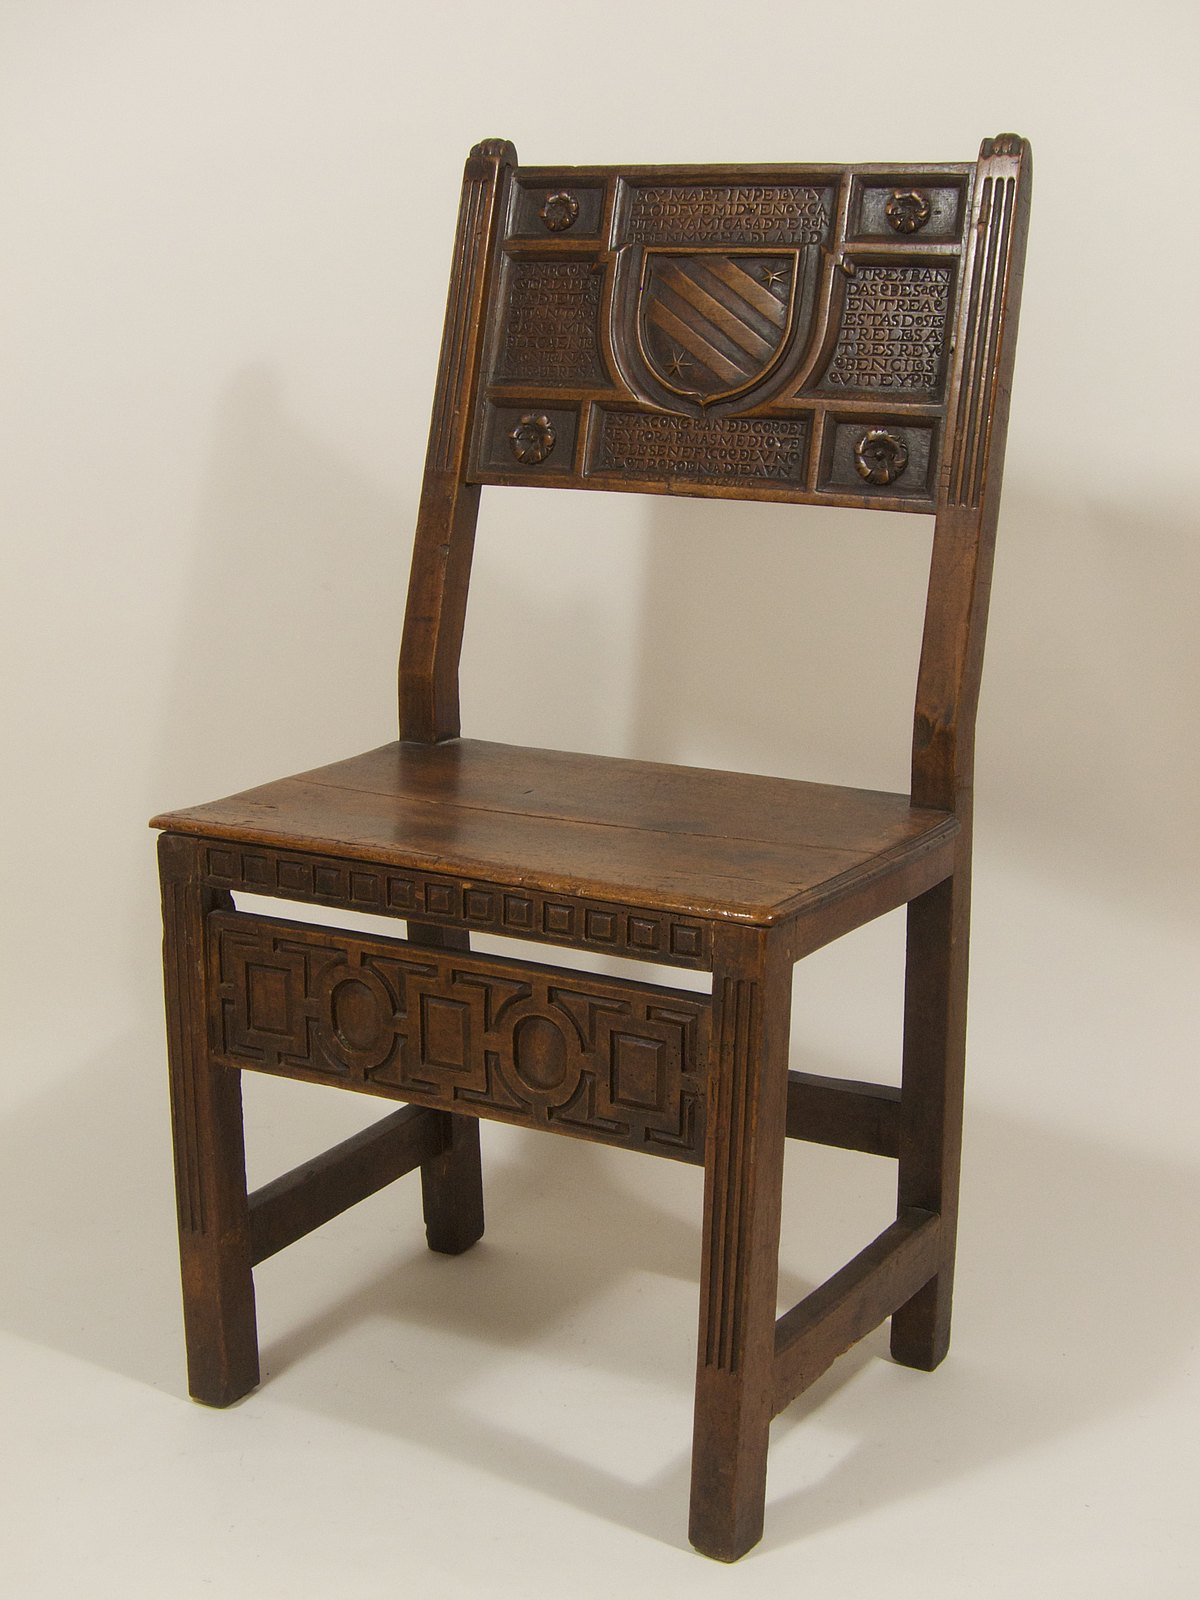 Spanish Chair Design & Art